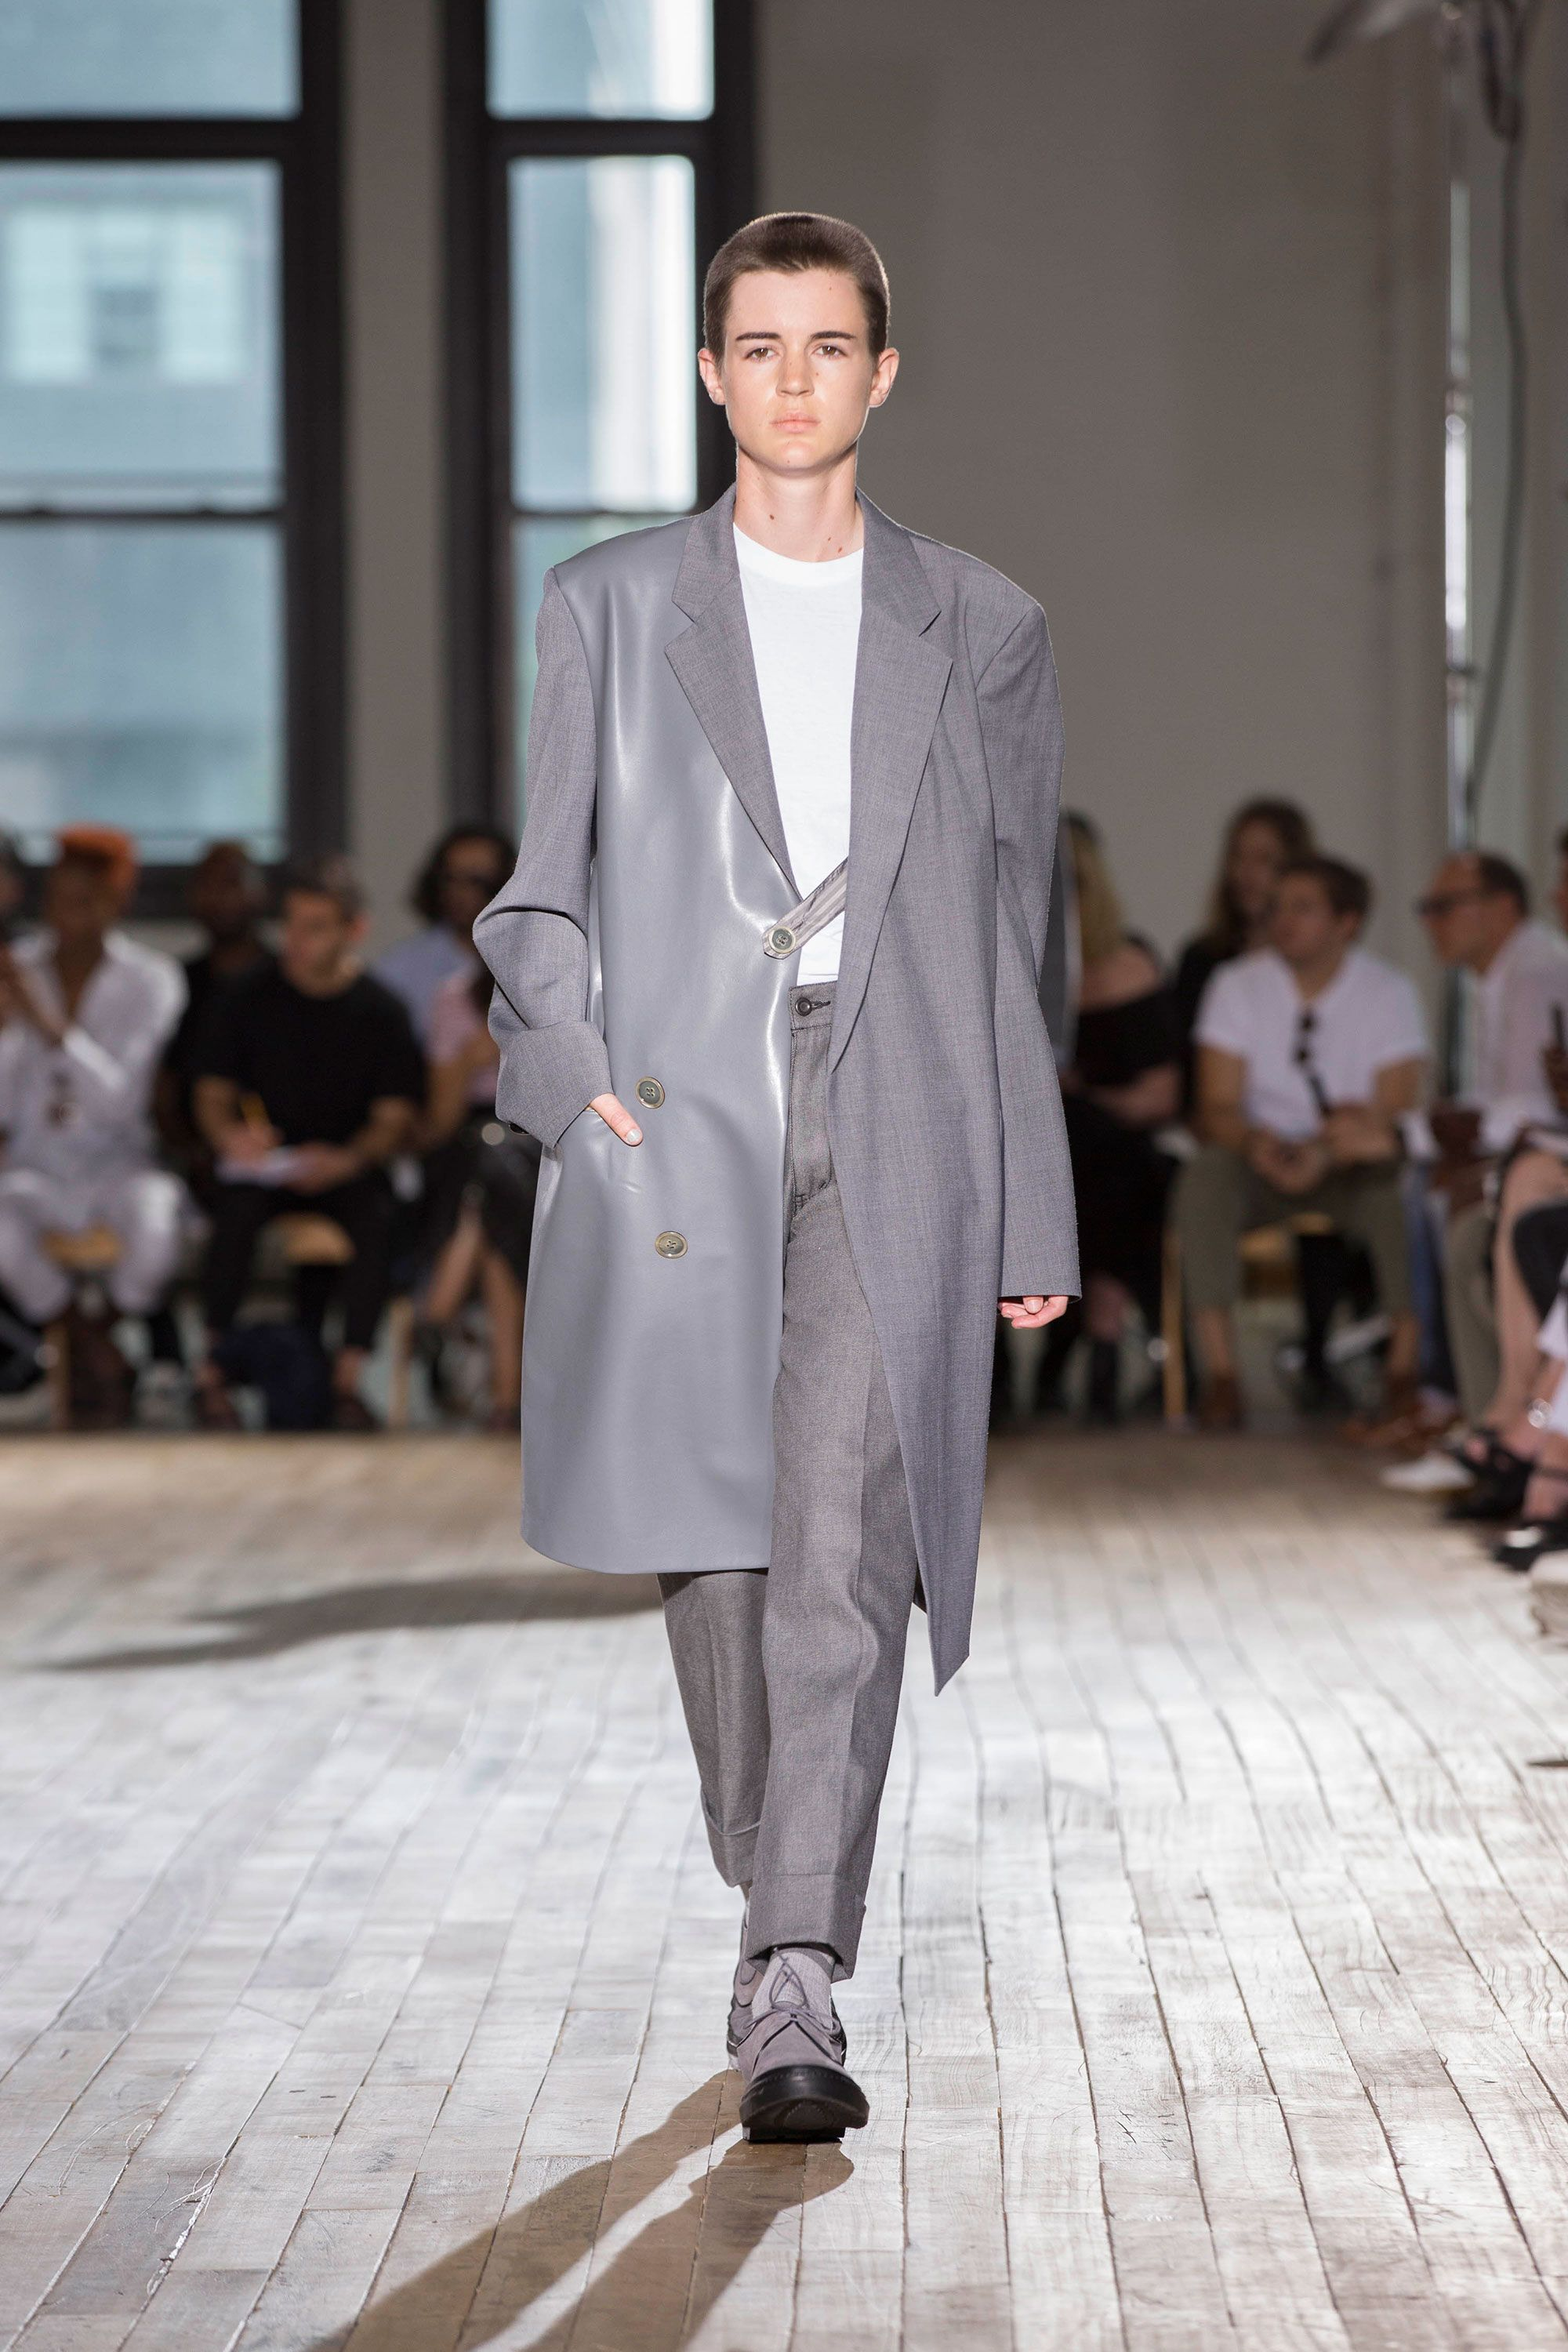 Kyle Mccoy Walked In A New York Mens Fashion Week Show